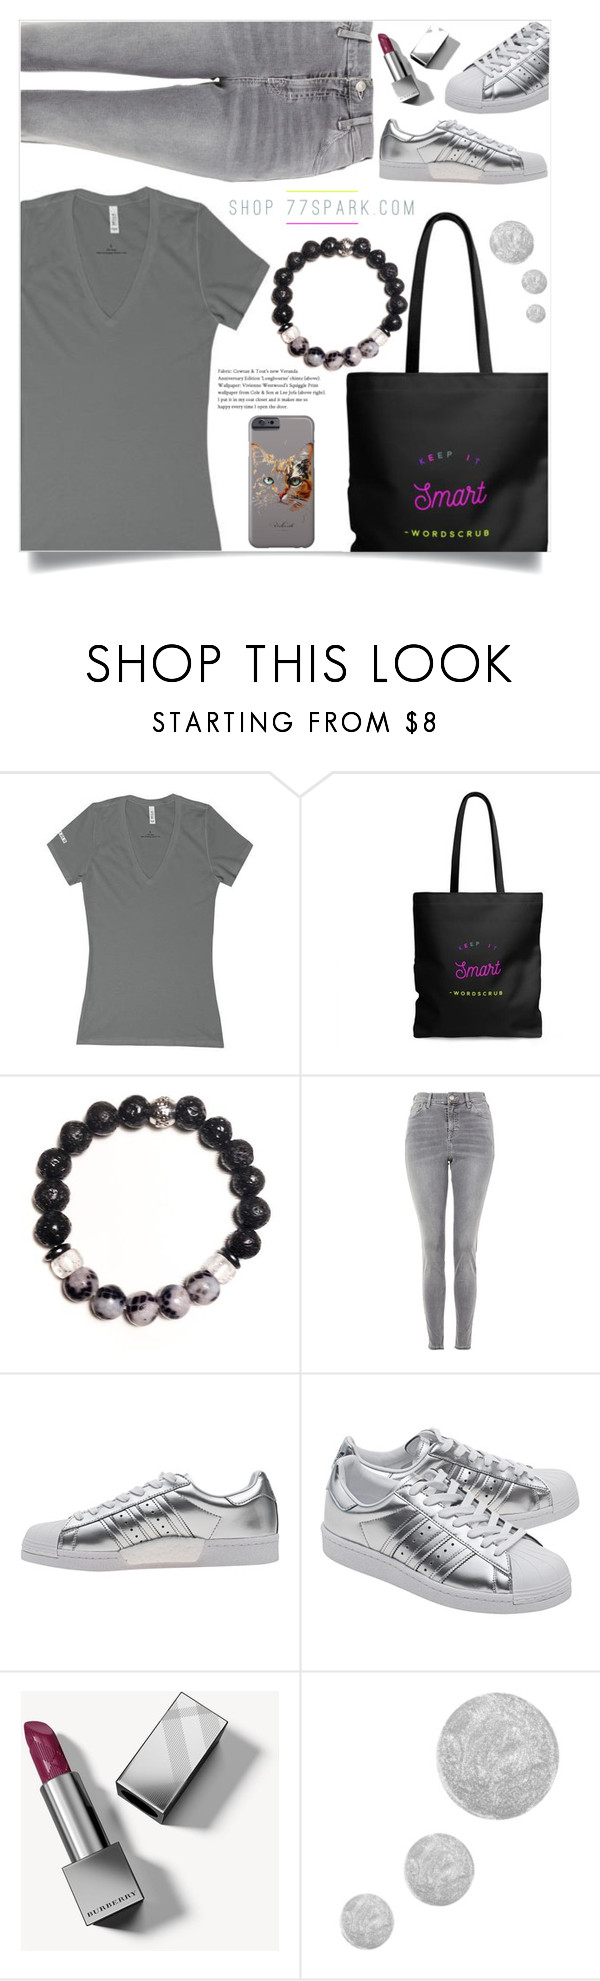 """""""Keep it smart! (12)"""" by samra-bv ❤ liked on Polyvore featuring Topshop, adidas Originals, Burberry and Kitty Kat"""